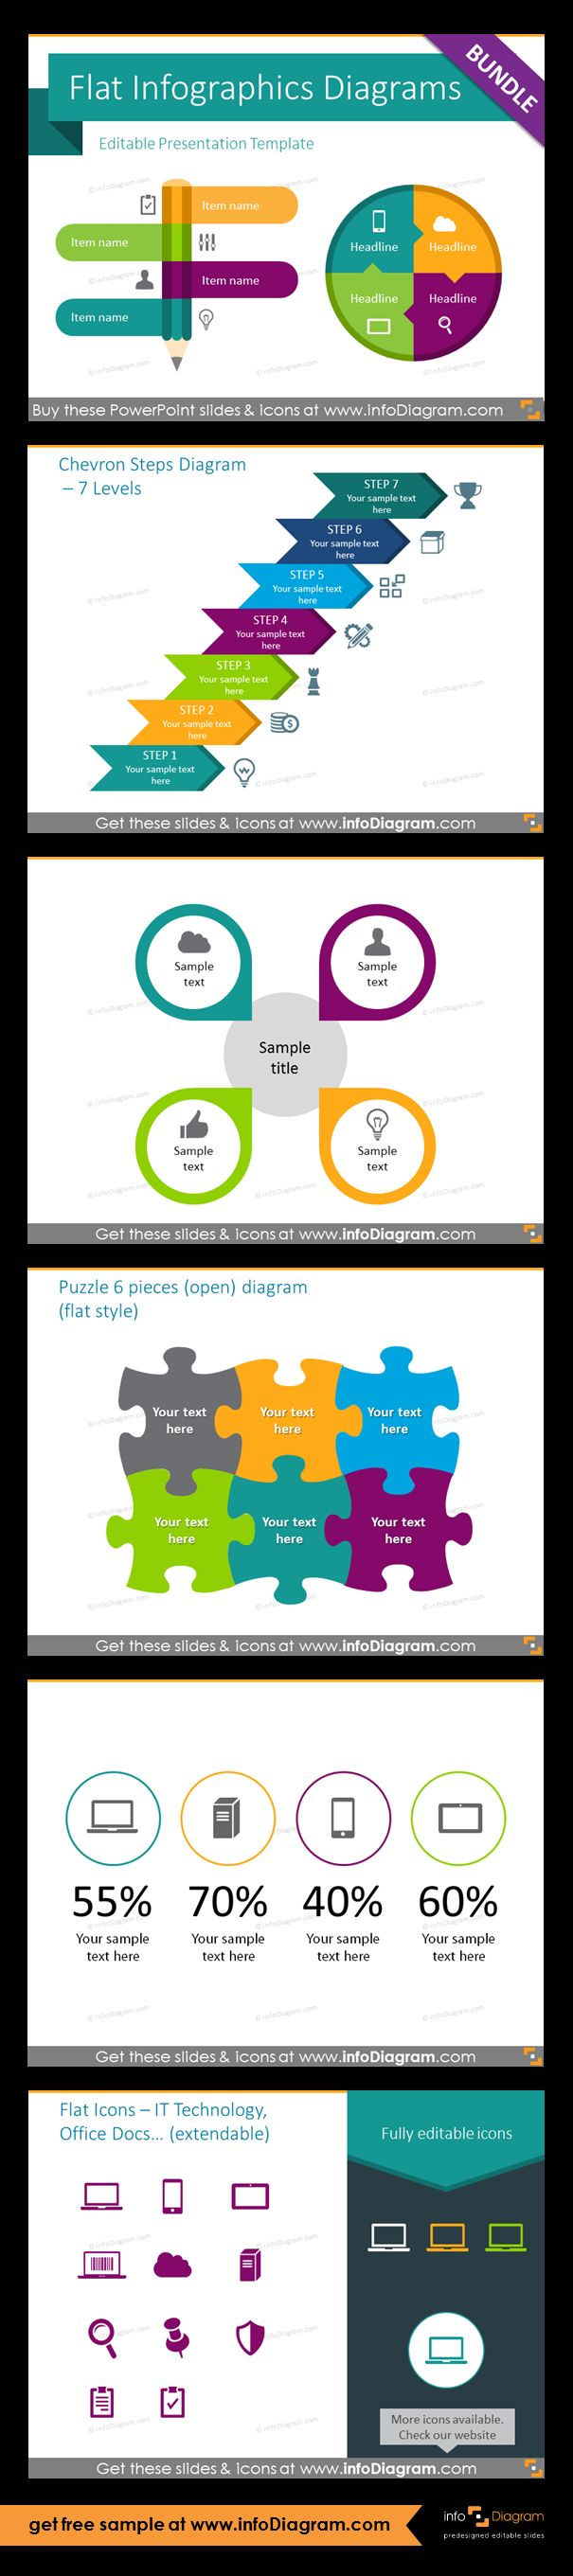 Infographics PowerPoint templates with modern flat design editable diagrams and vector icons. Chevron 7-level steps diagram, central list template for 4 items, open 6-pieces puzzle diagram, KPI presenting example, index of IT and documents images. Fully editable style, size and colors.